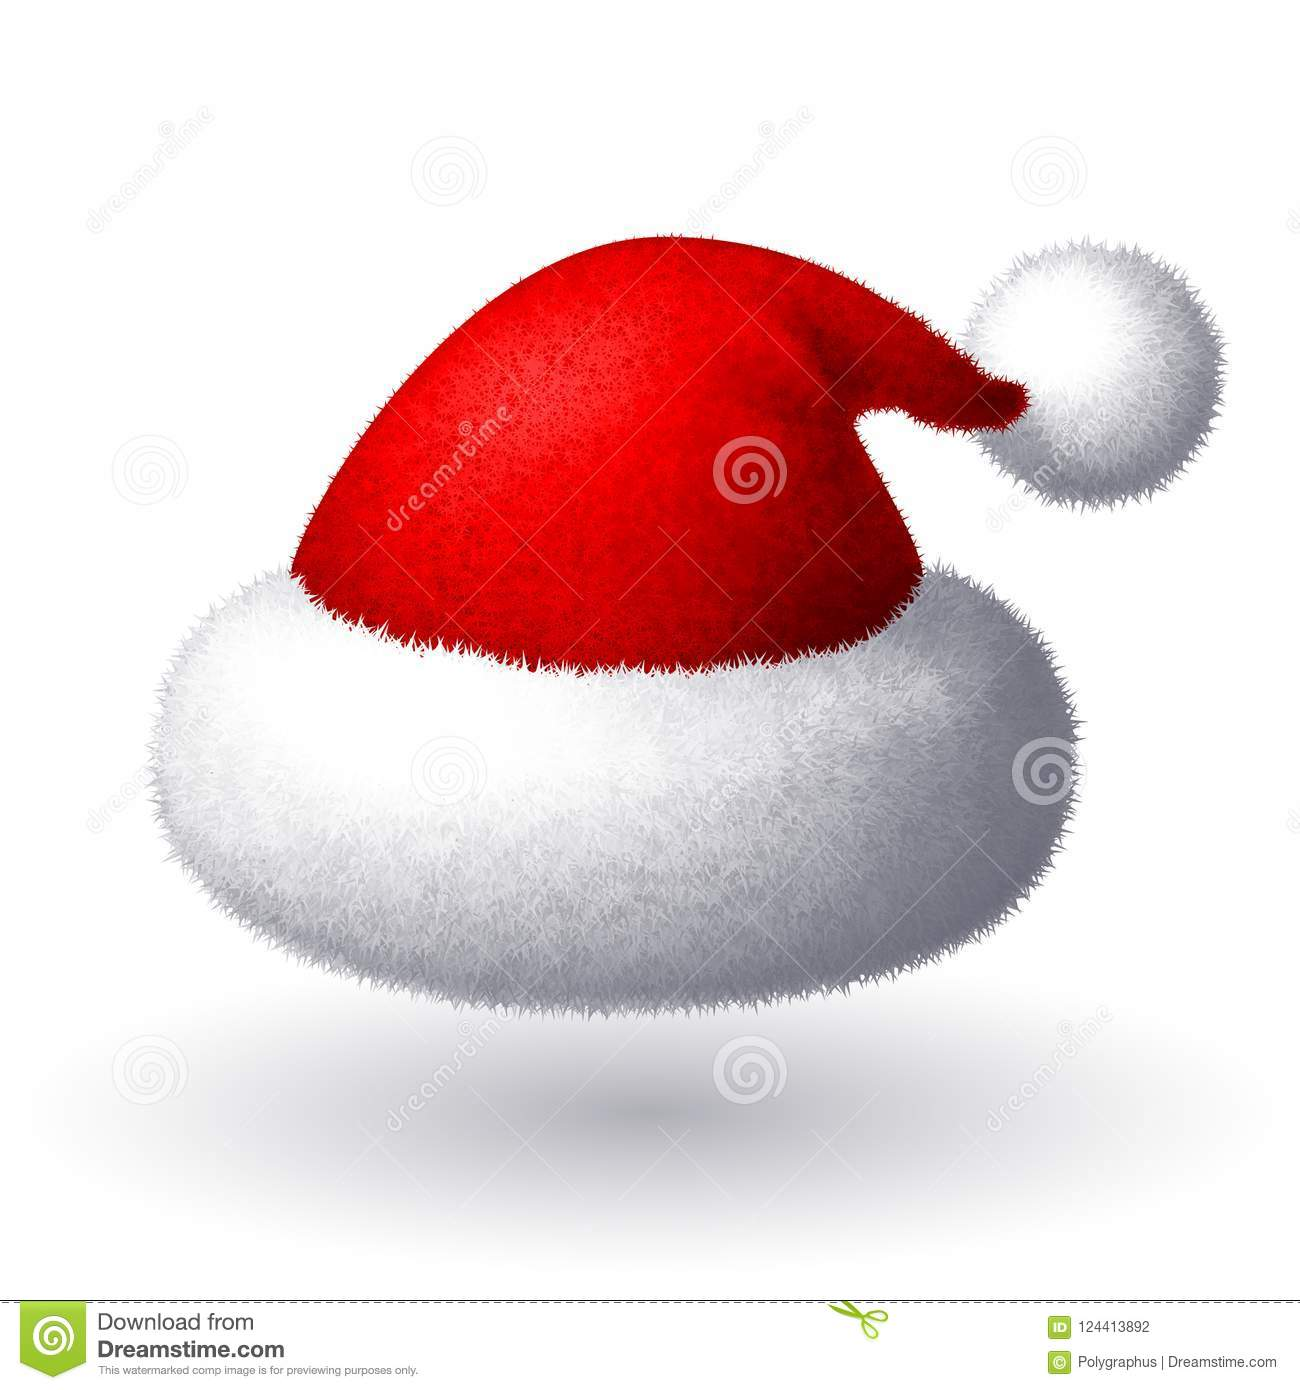 e22cfda51f82c Realistic Vector Santa Hat Isolated On White Background Stock Vector ...